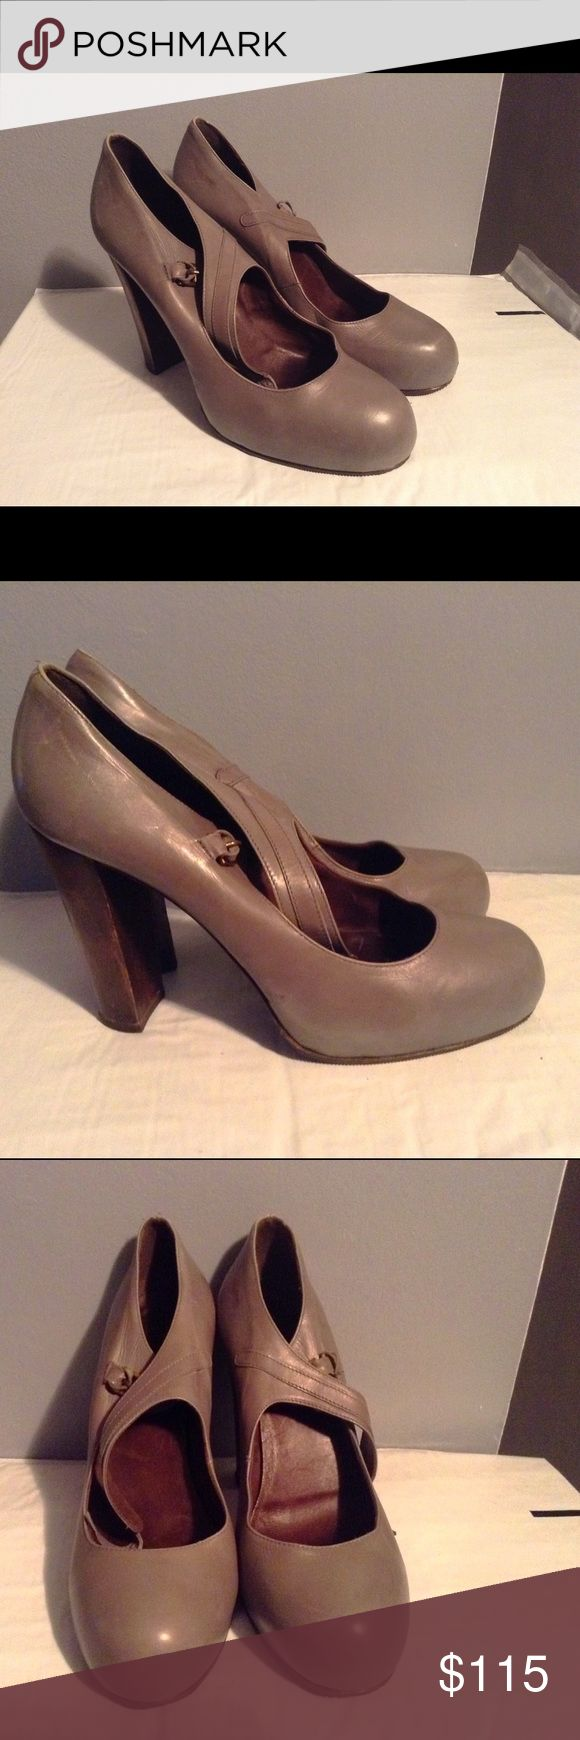 Joie Gray Mushroom Mary Jane Wooden Heel Shoes Shoes are discontinued and hard to find. In excellent condition. Does show minimal usual wear. Joie Shoes Platforms